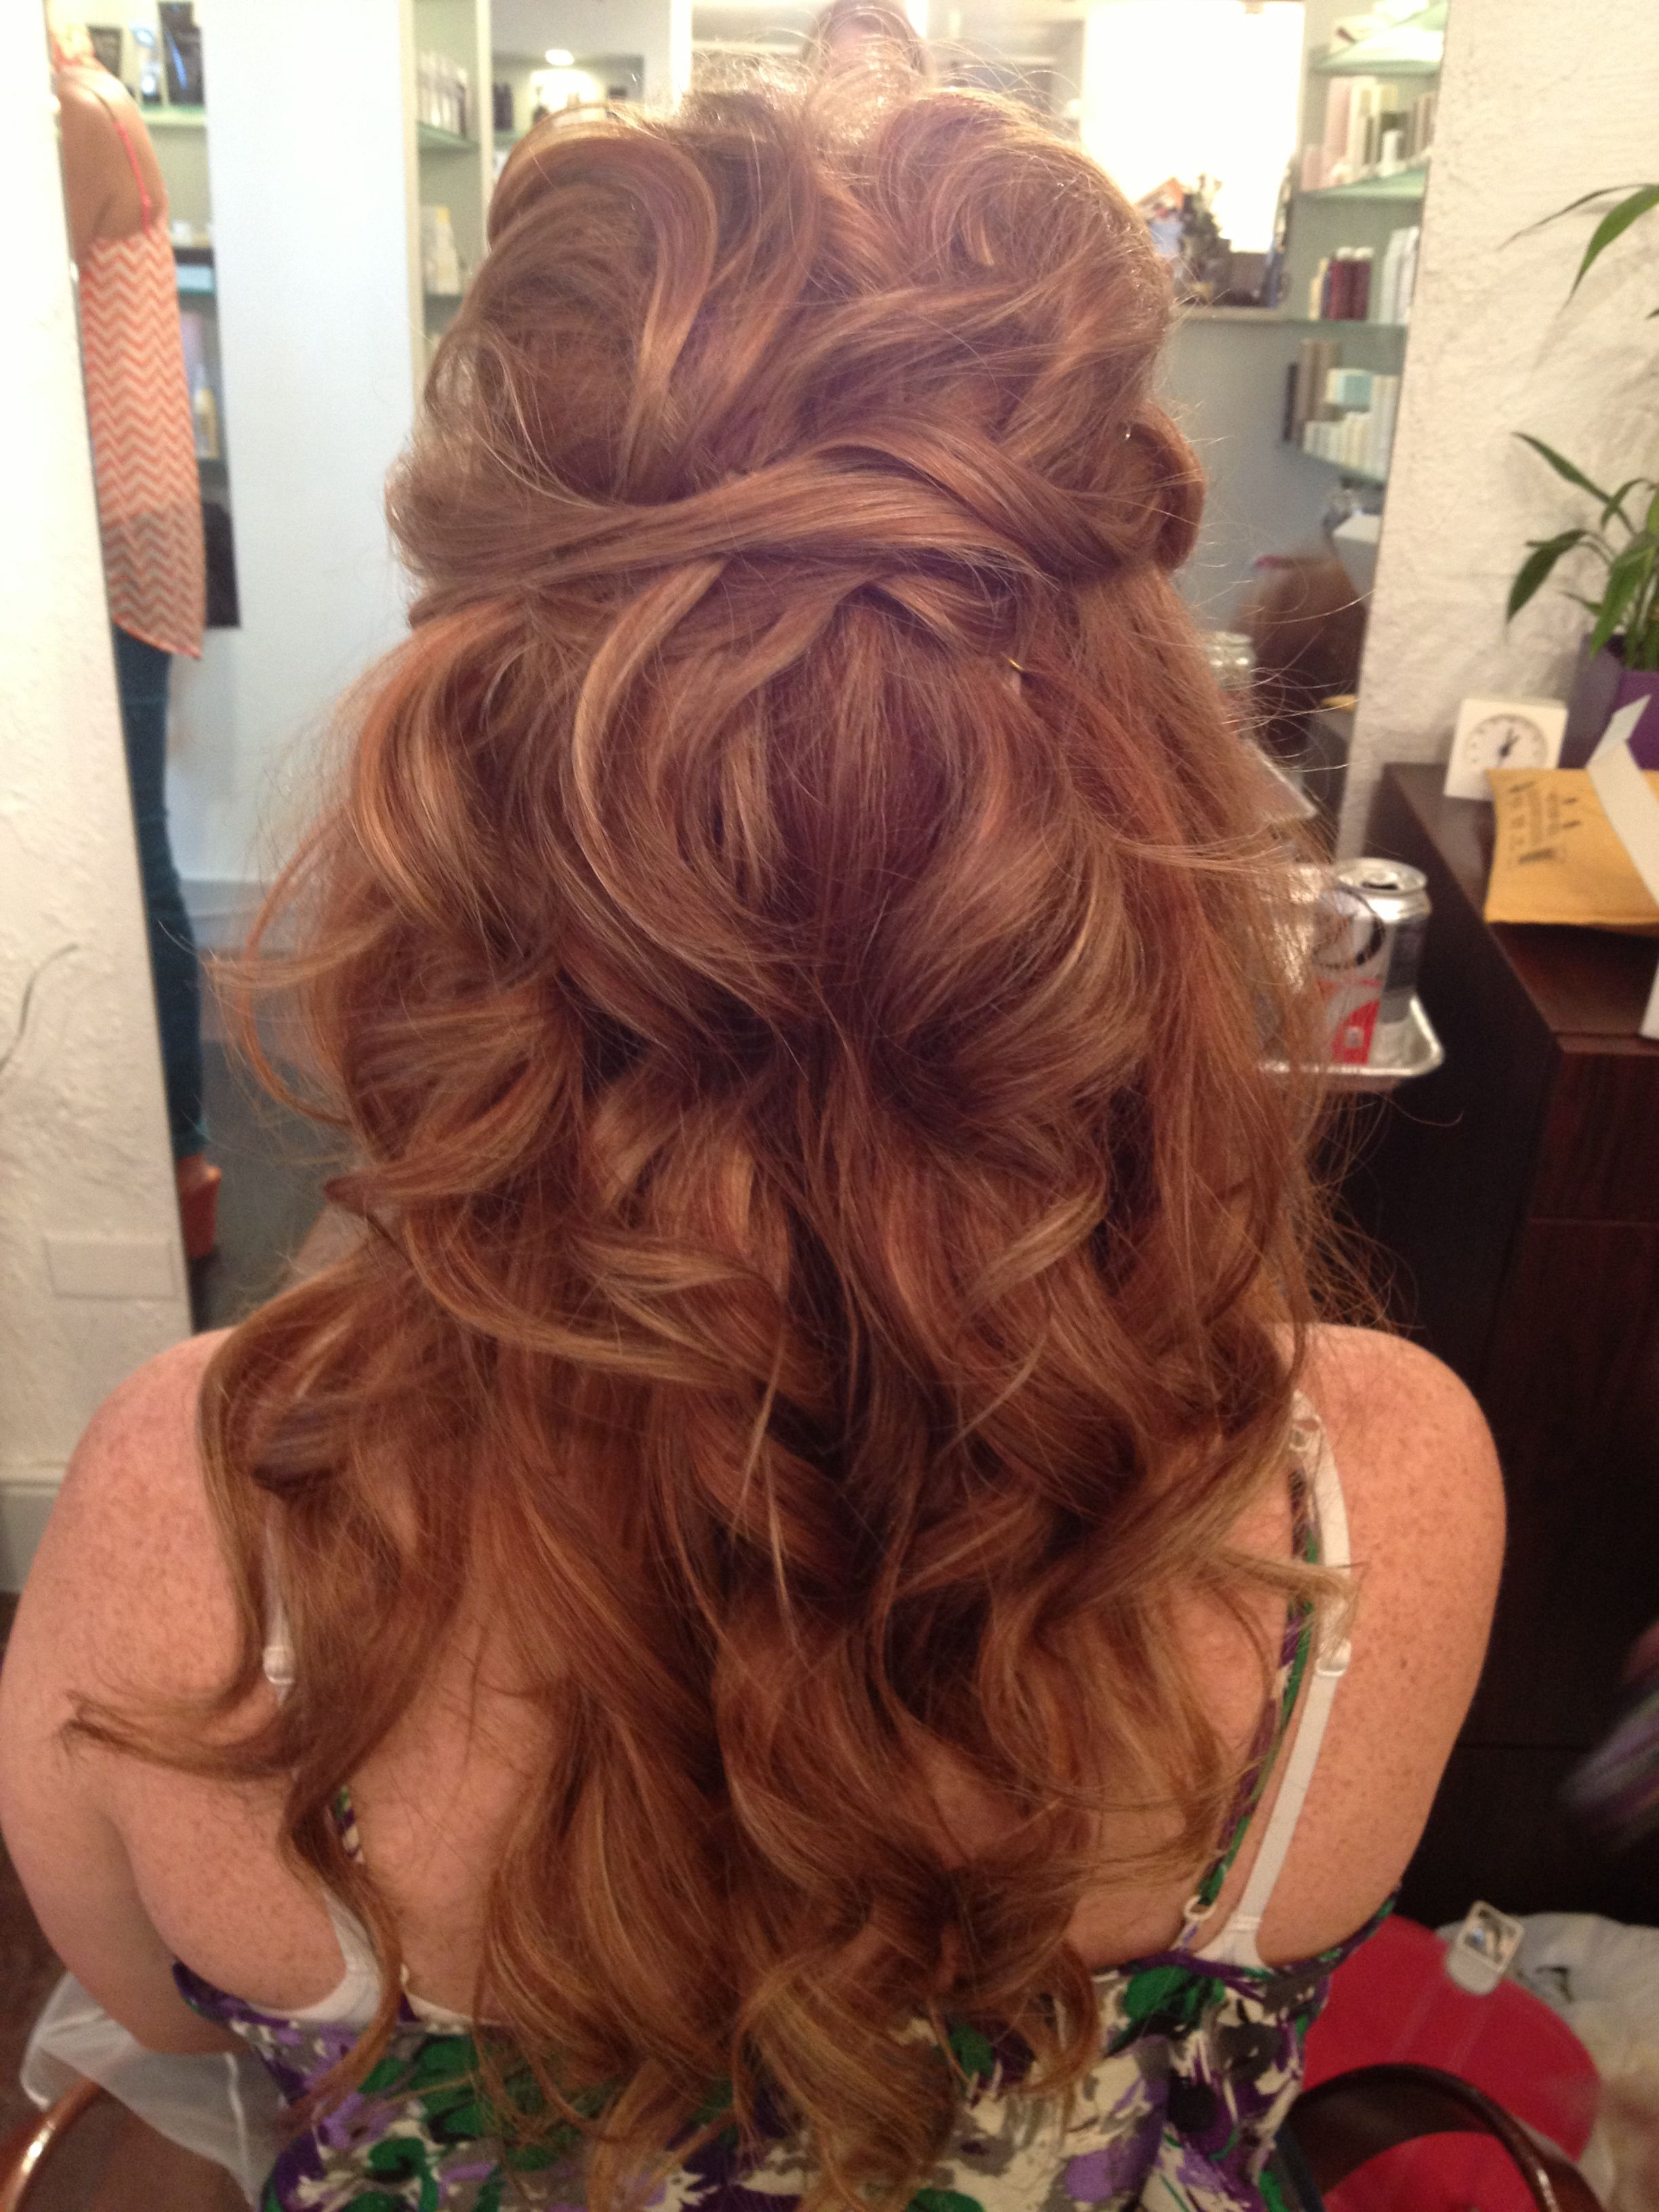 Half up half down bridal hairrfect for pinning a veil in